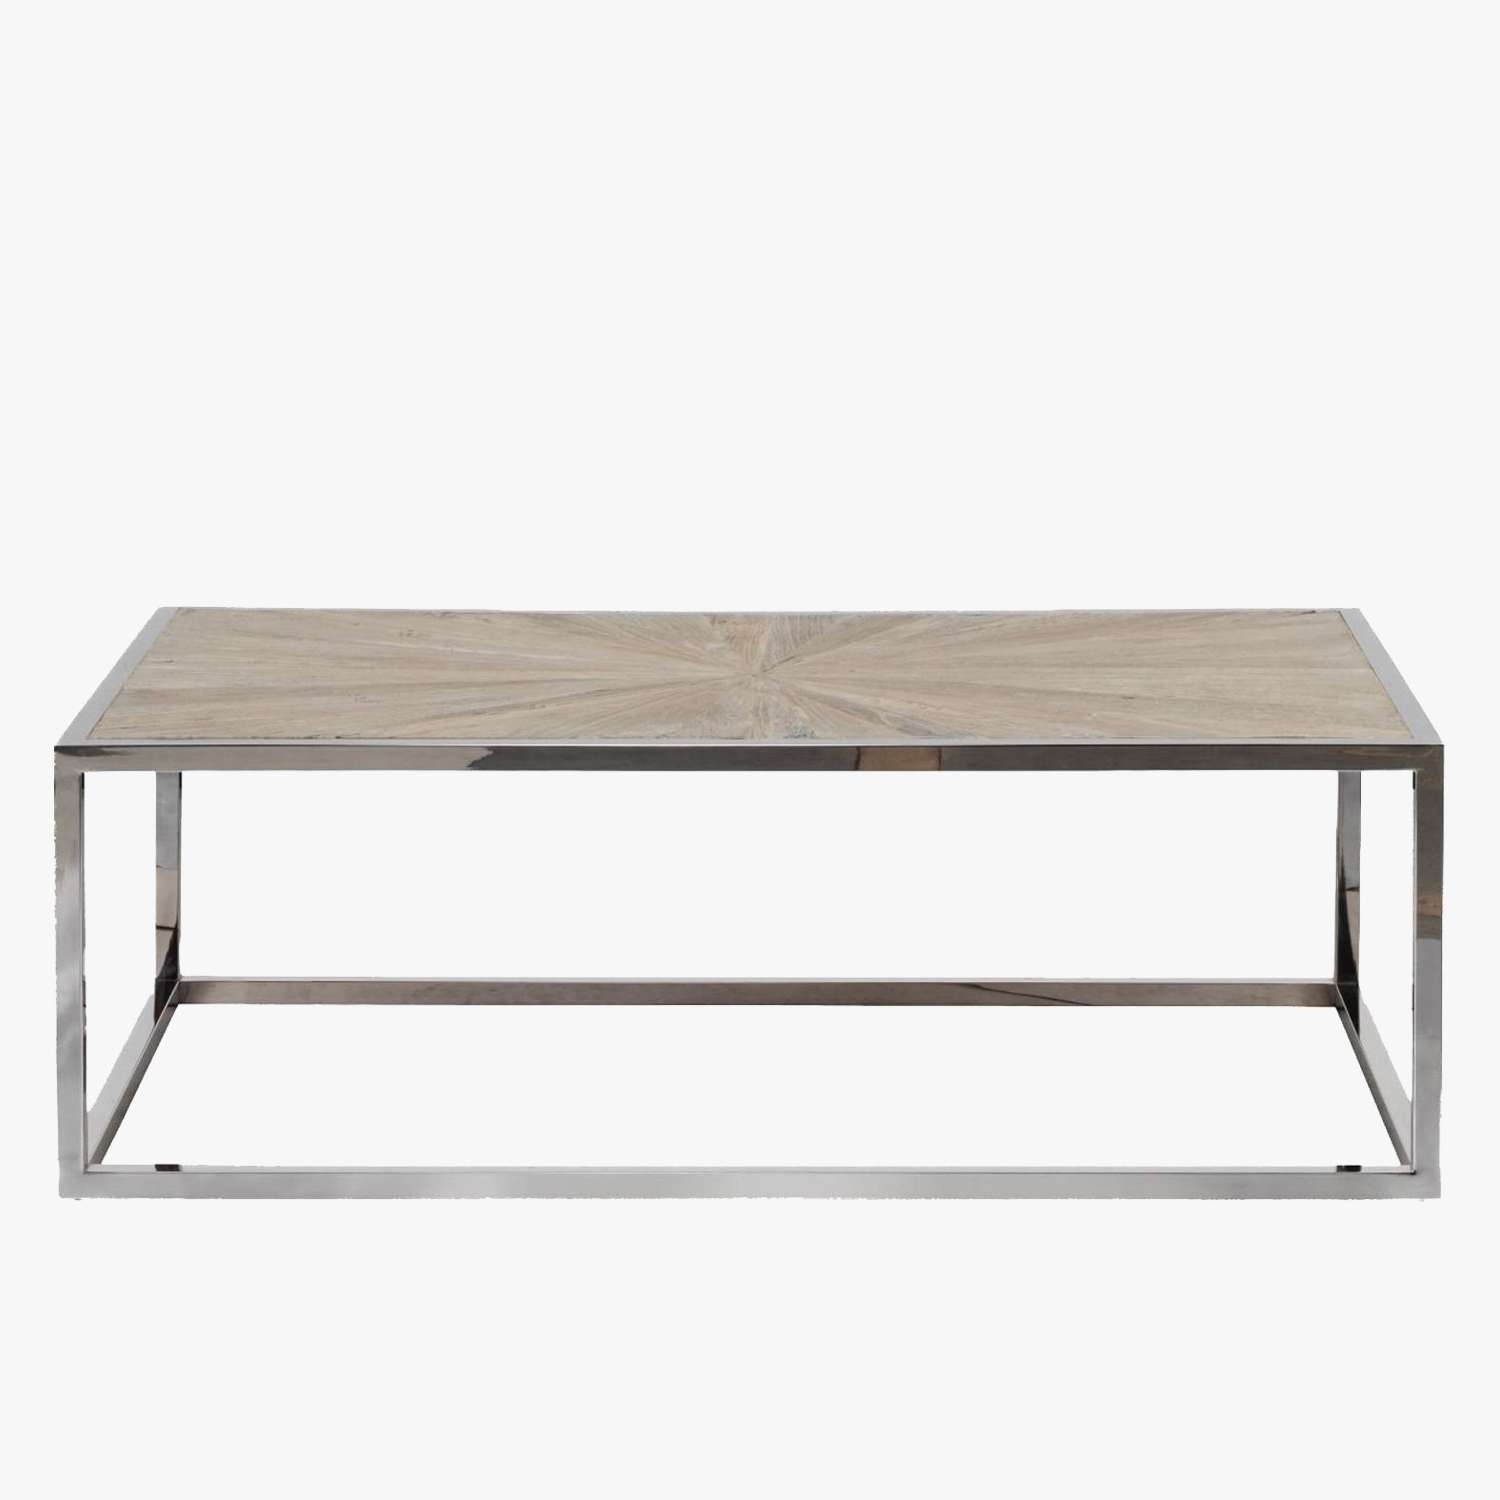 Parquet Top Chrome Coffee Table – Shop Coffee Tables – Dear Keaton Within Latest Chrome And Wood Coffee Tables (View 14 of 20)